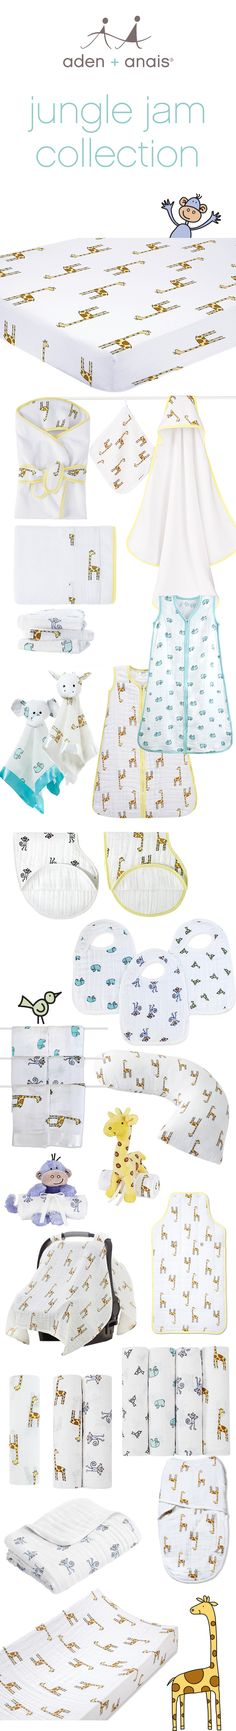 Giraffes, monkeys, little birds and elephants, galore! We've got all the cotton muslin baby essentials you need to complete your jungle nursery!